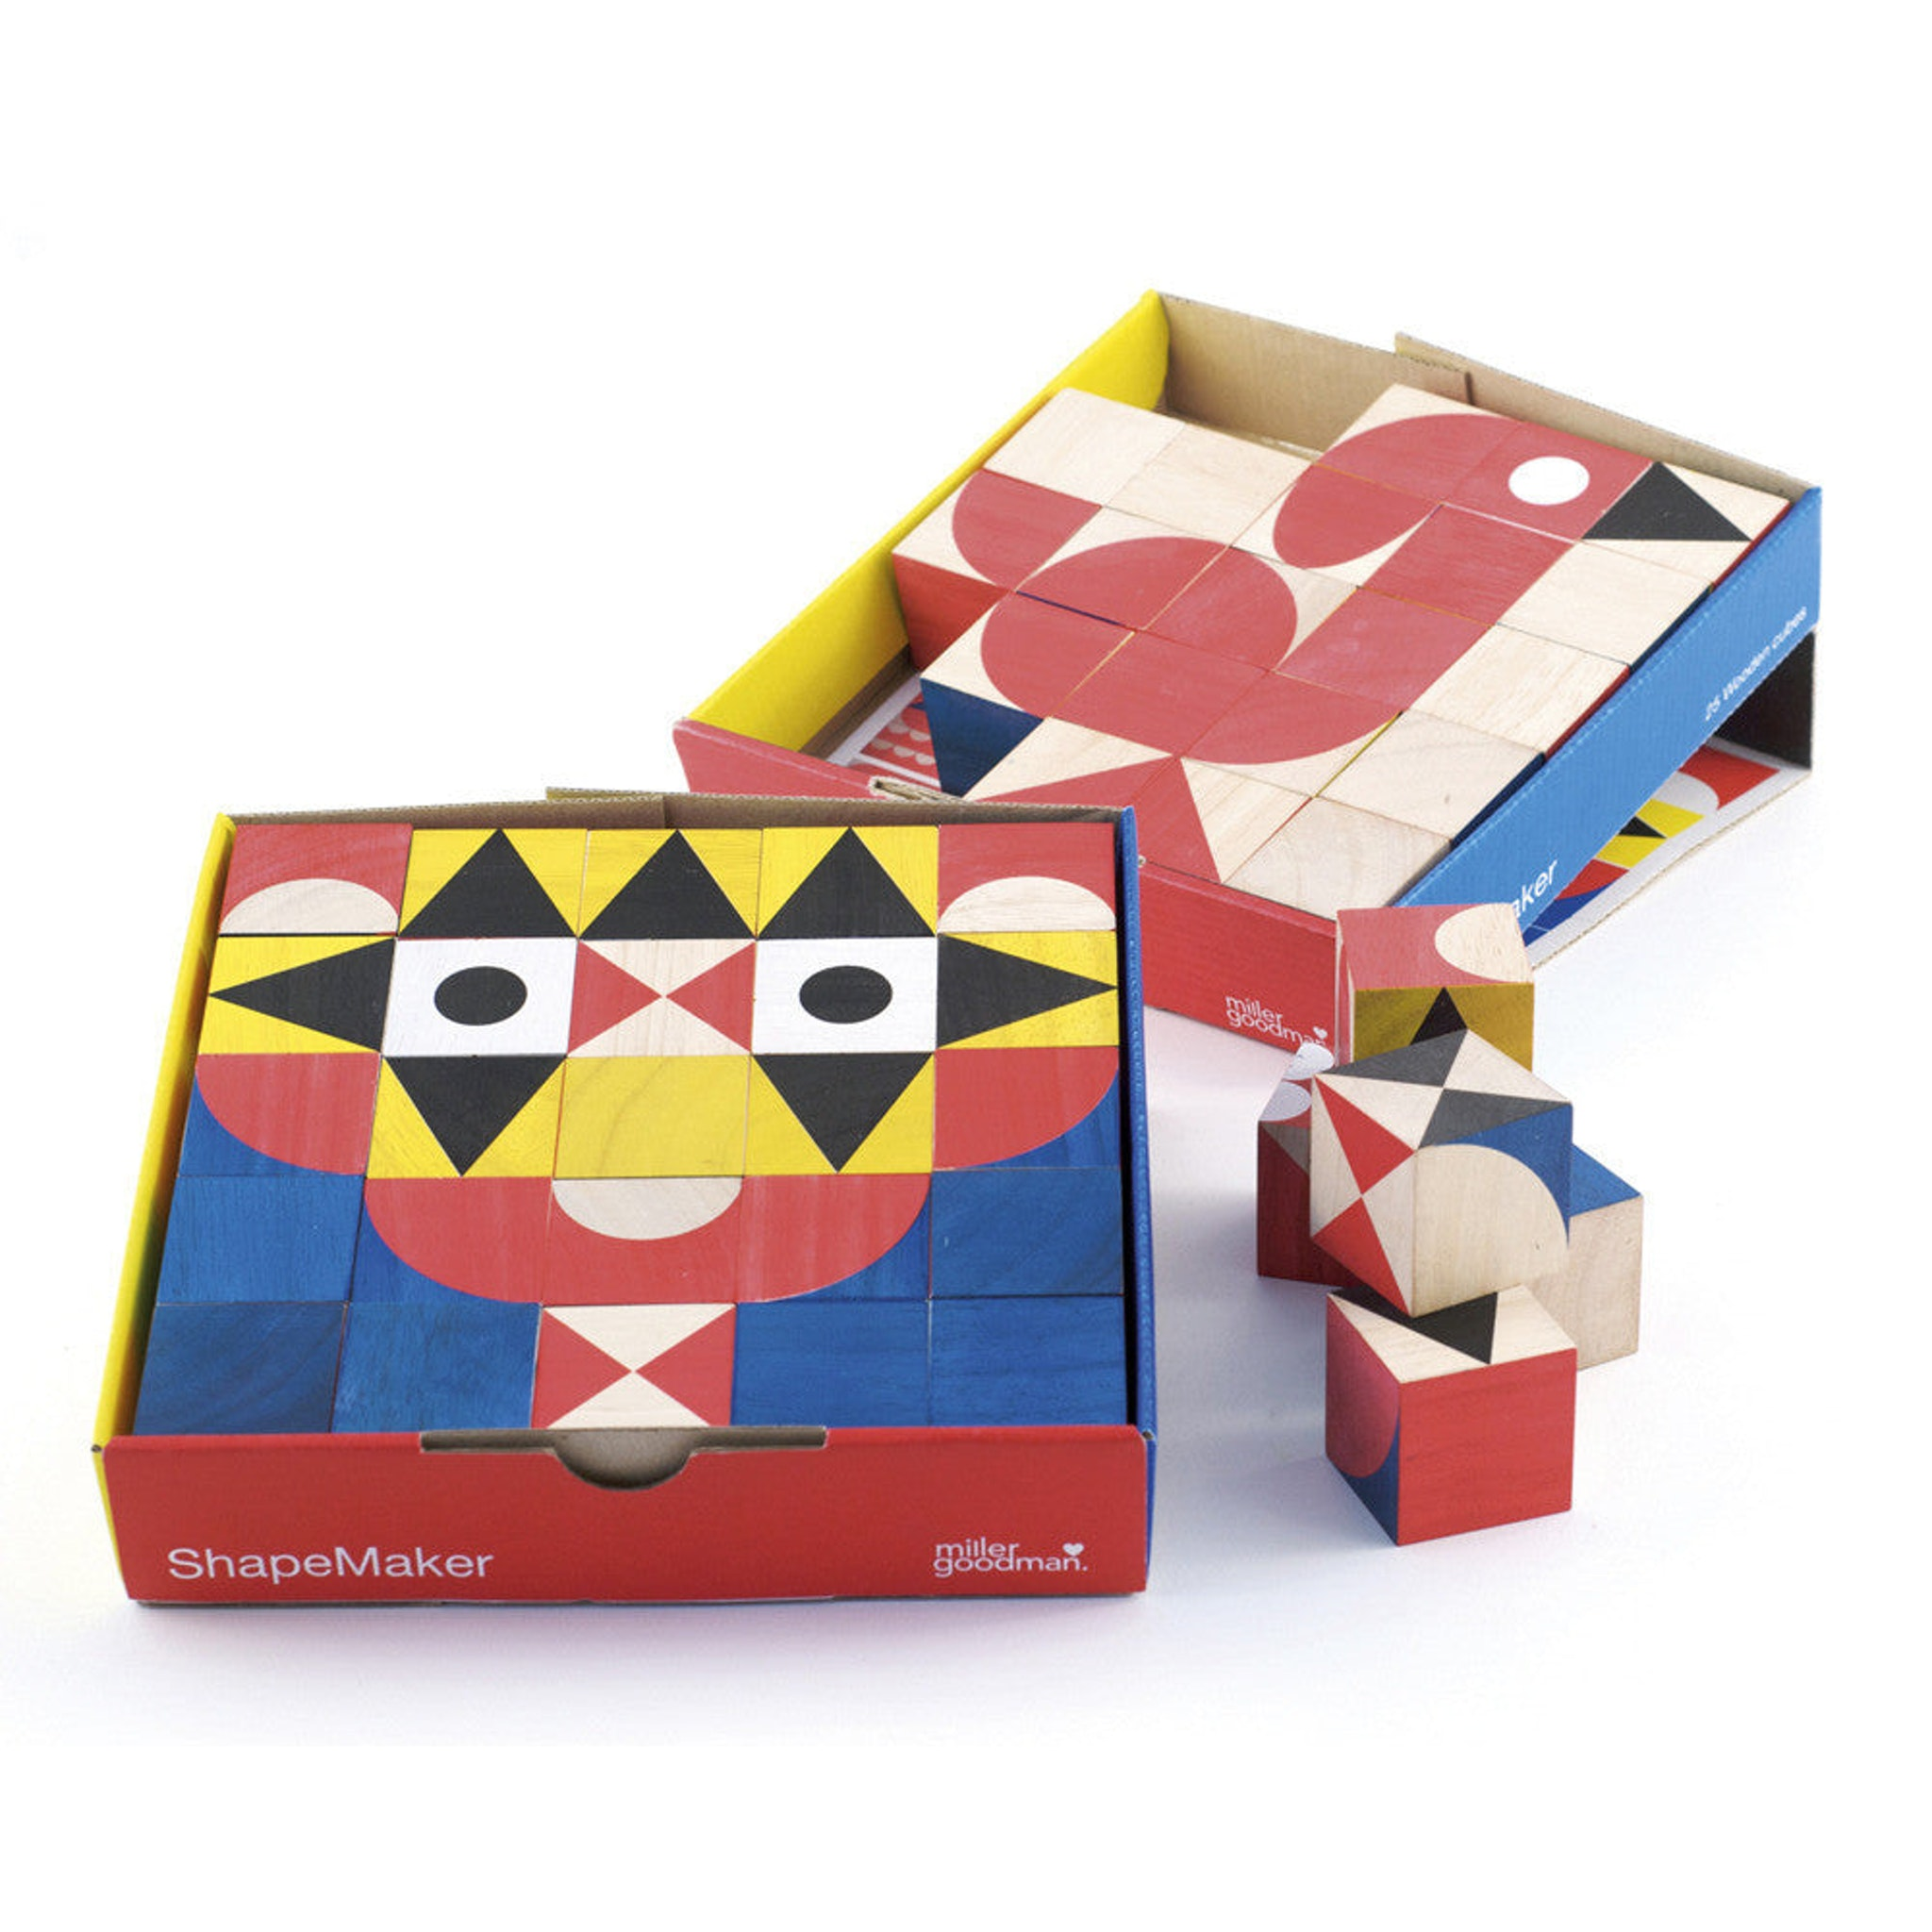 Shapemaker Toy